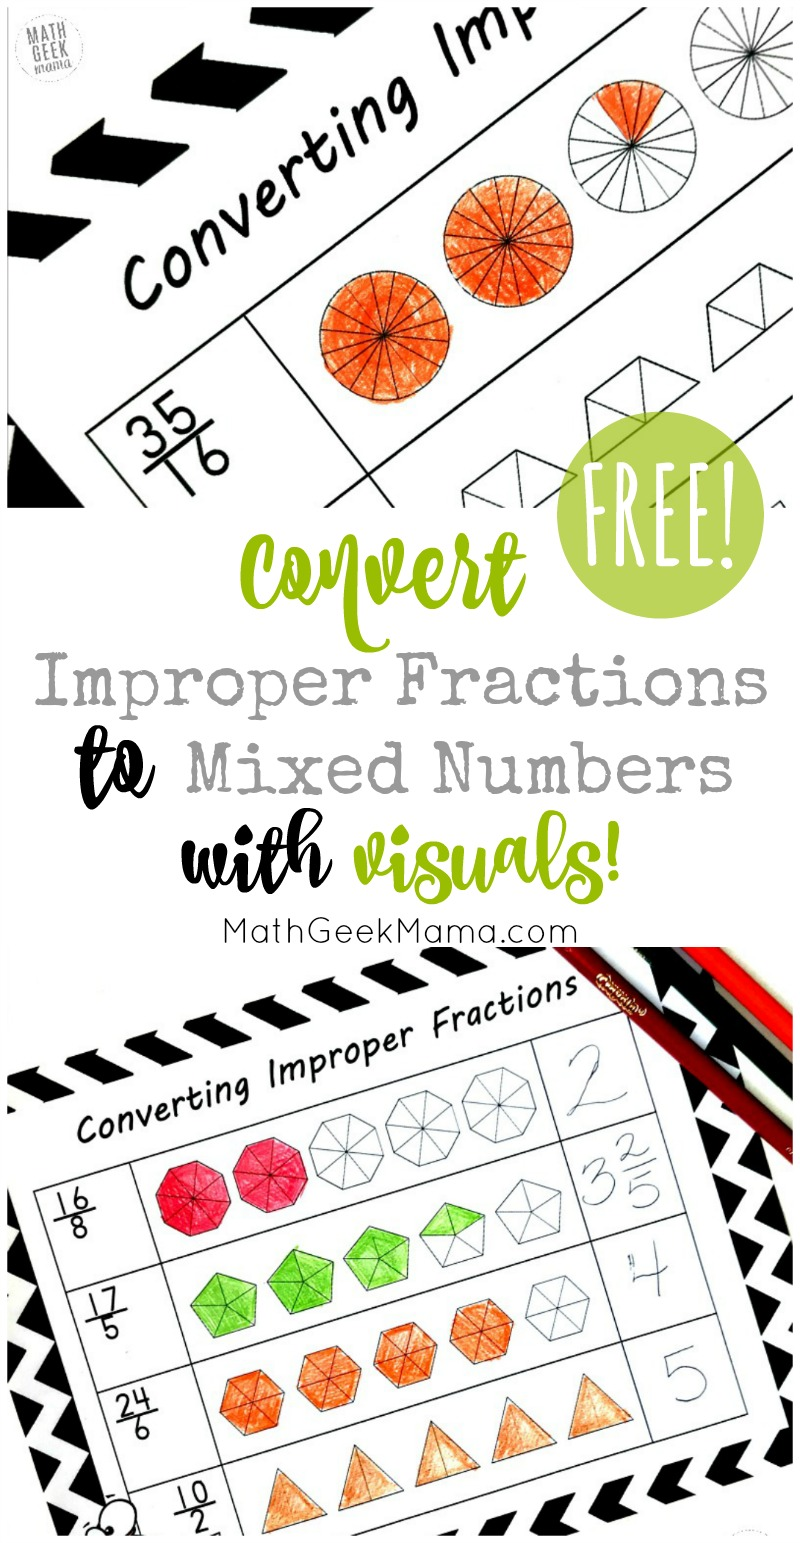 FREE} Convert Improper Fractions to Mixed Numbers Using Visuals